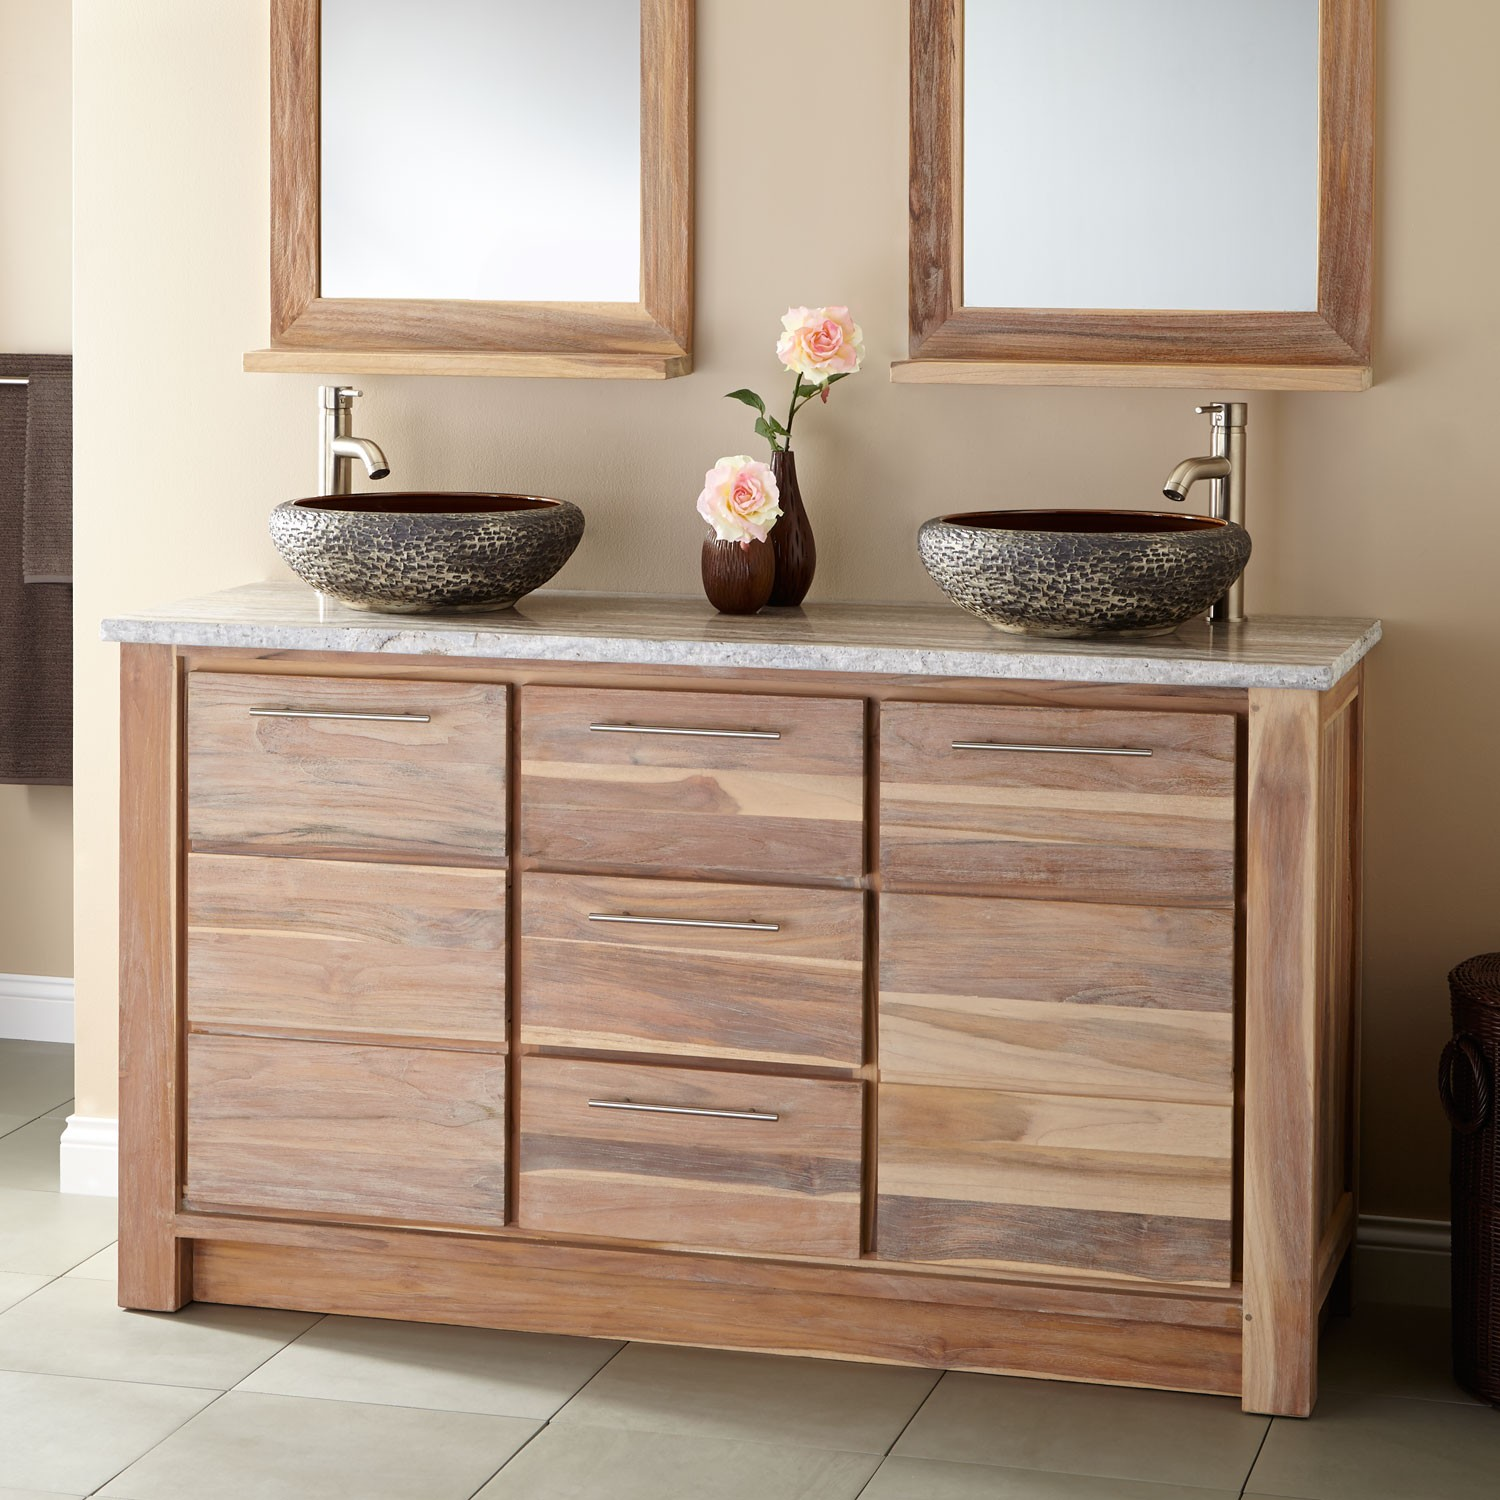 Image of: Teak Double Vanity